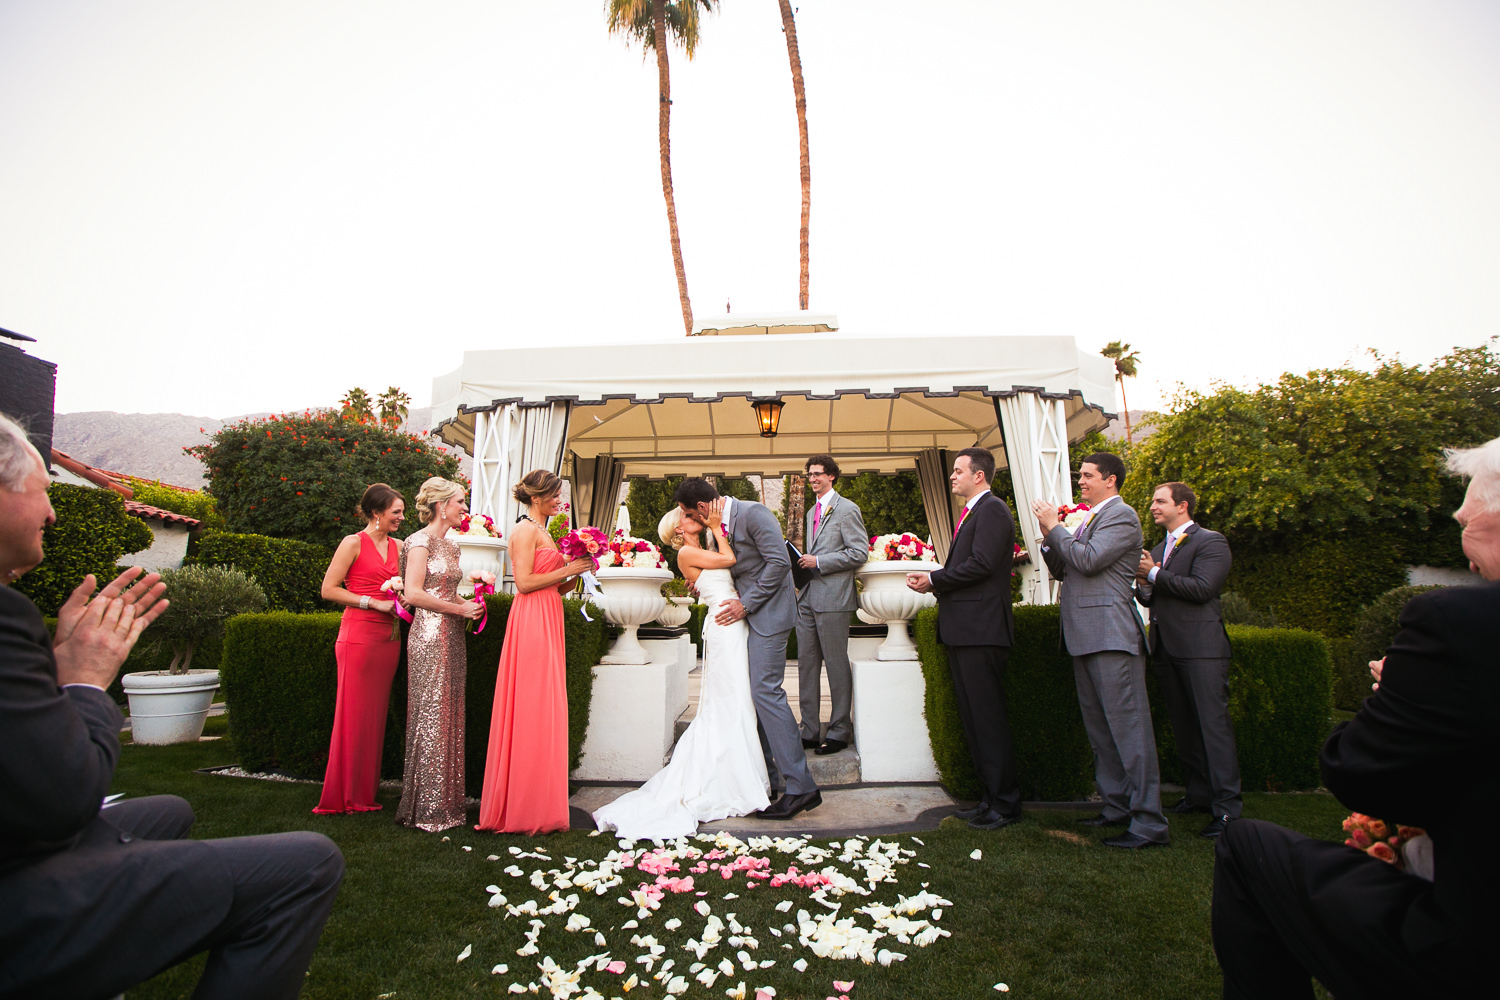 Avalon Palm Springs Photographer - Kissing the bride